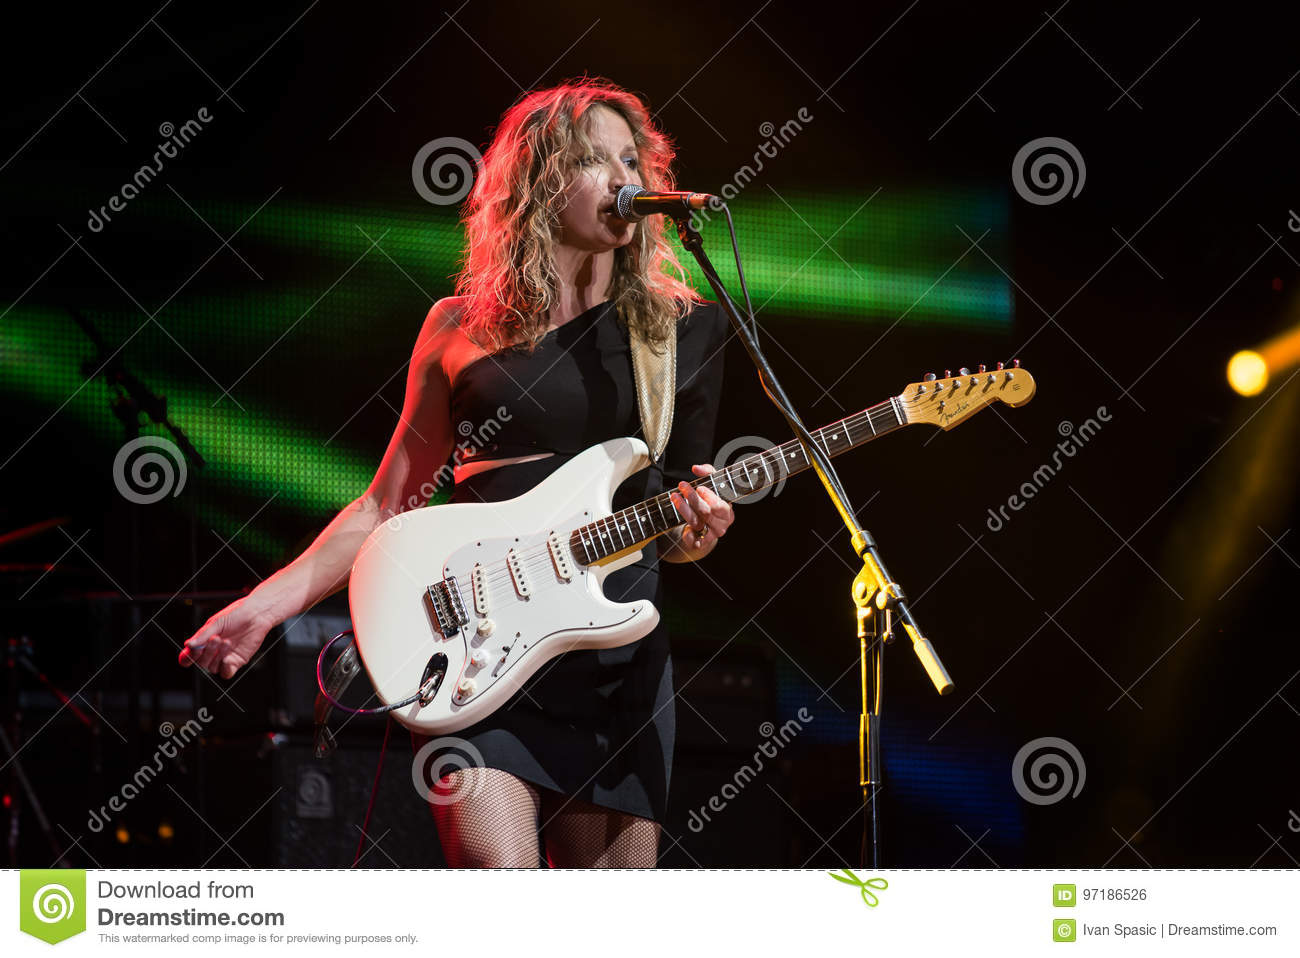 Blues guitarist and singer Ana Popovic performing live at Arsenal Fest, June 23. 2017